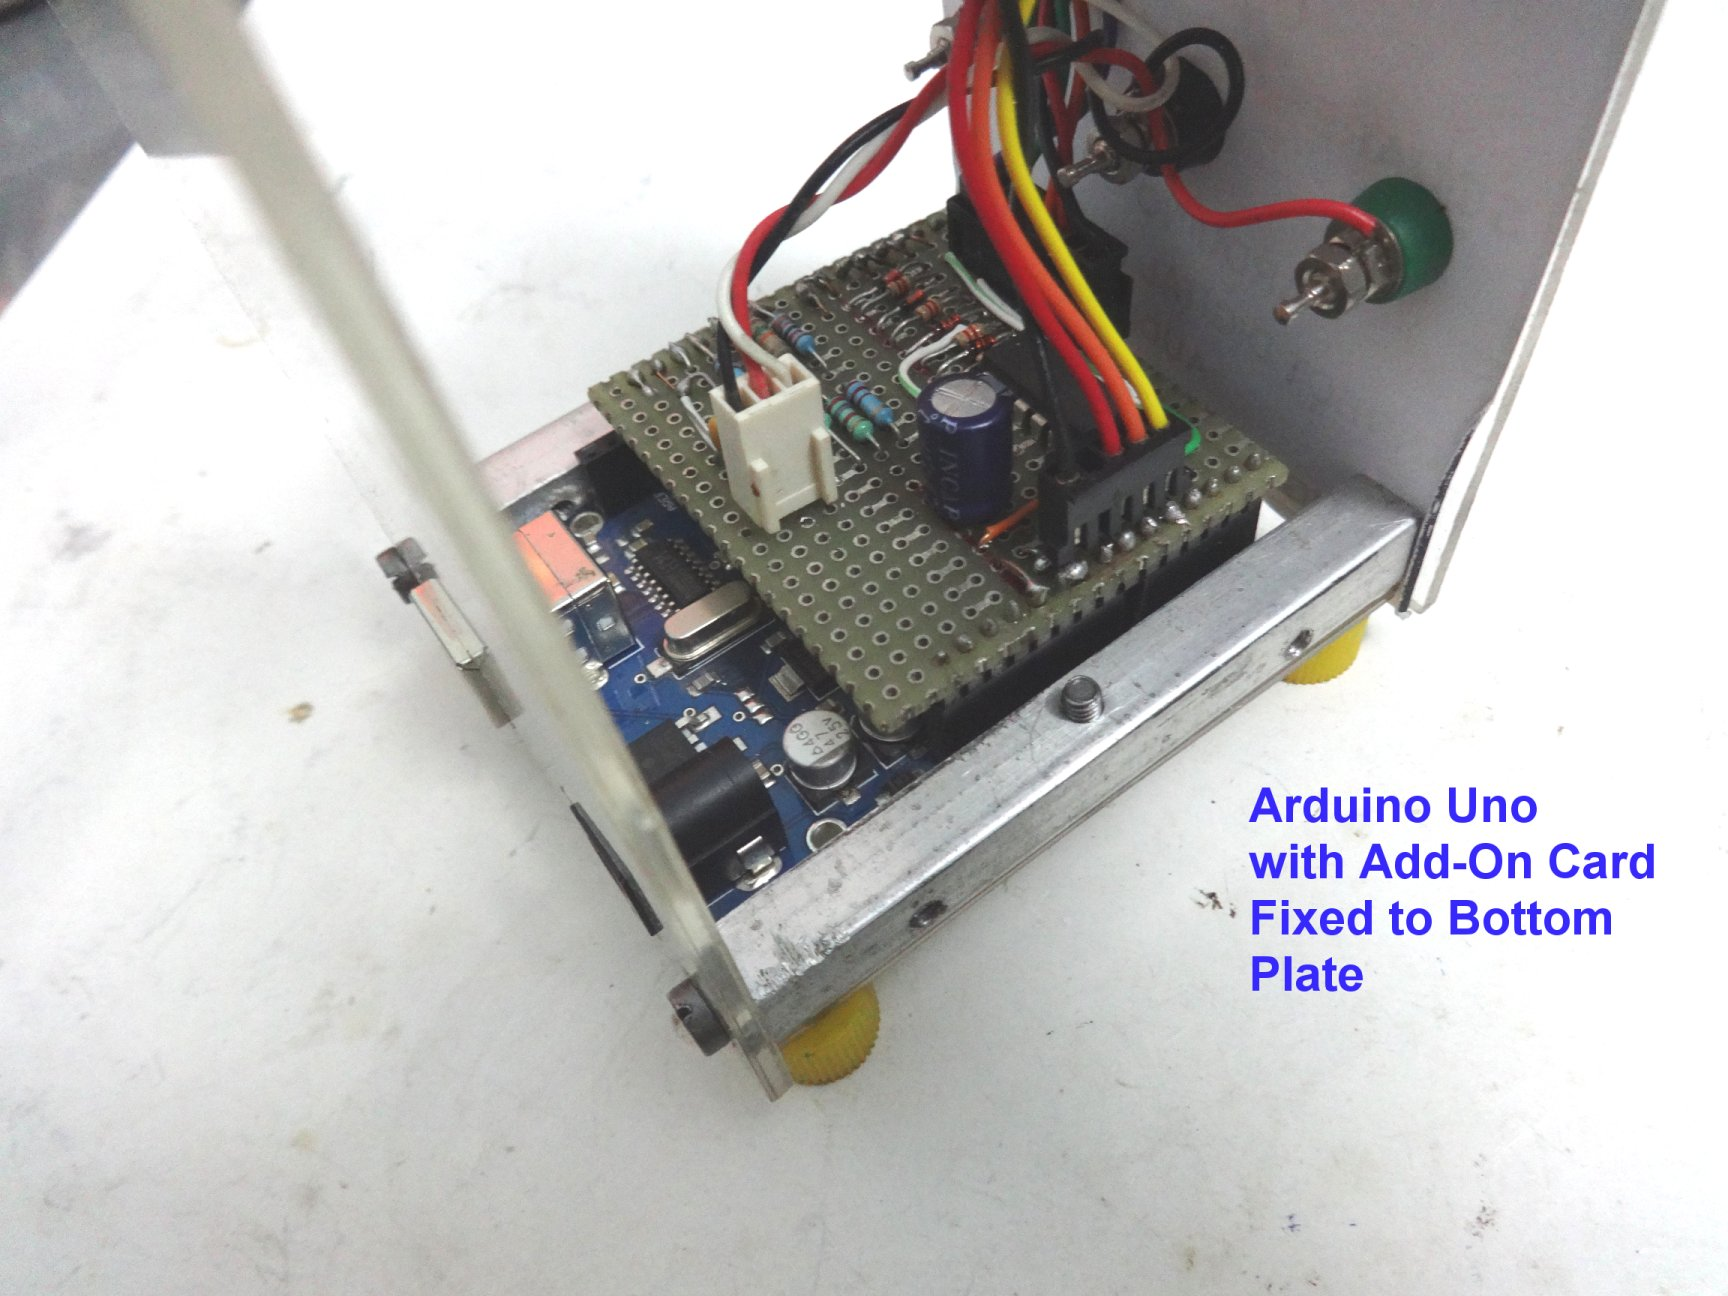 Picture of Final Assembly of the Electronics